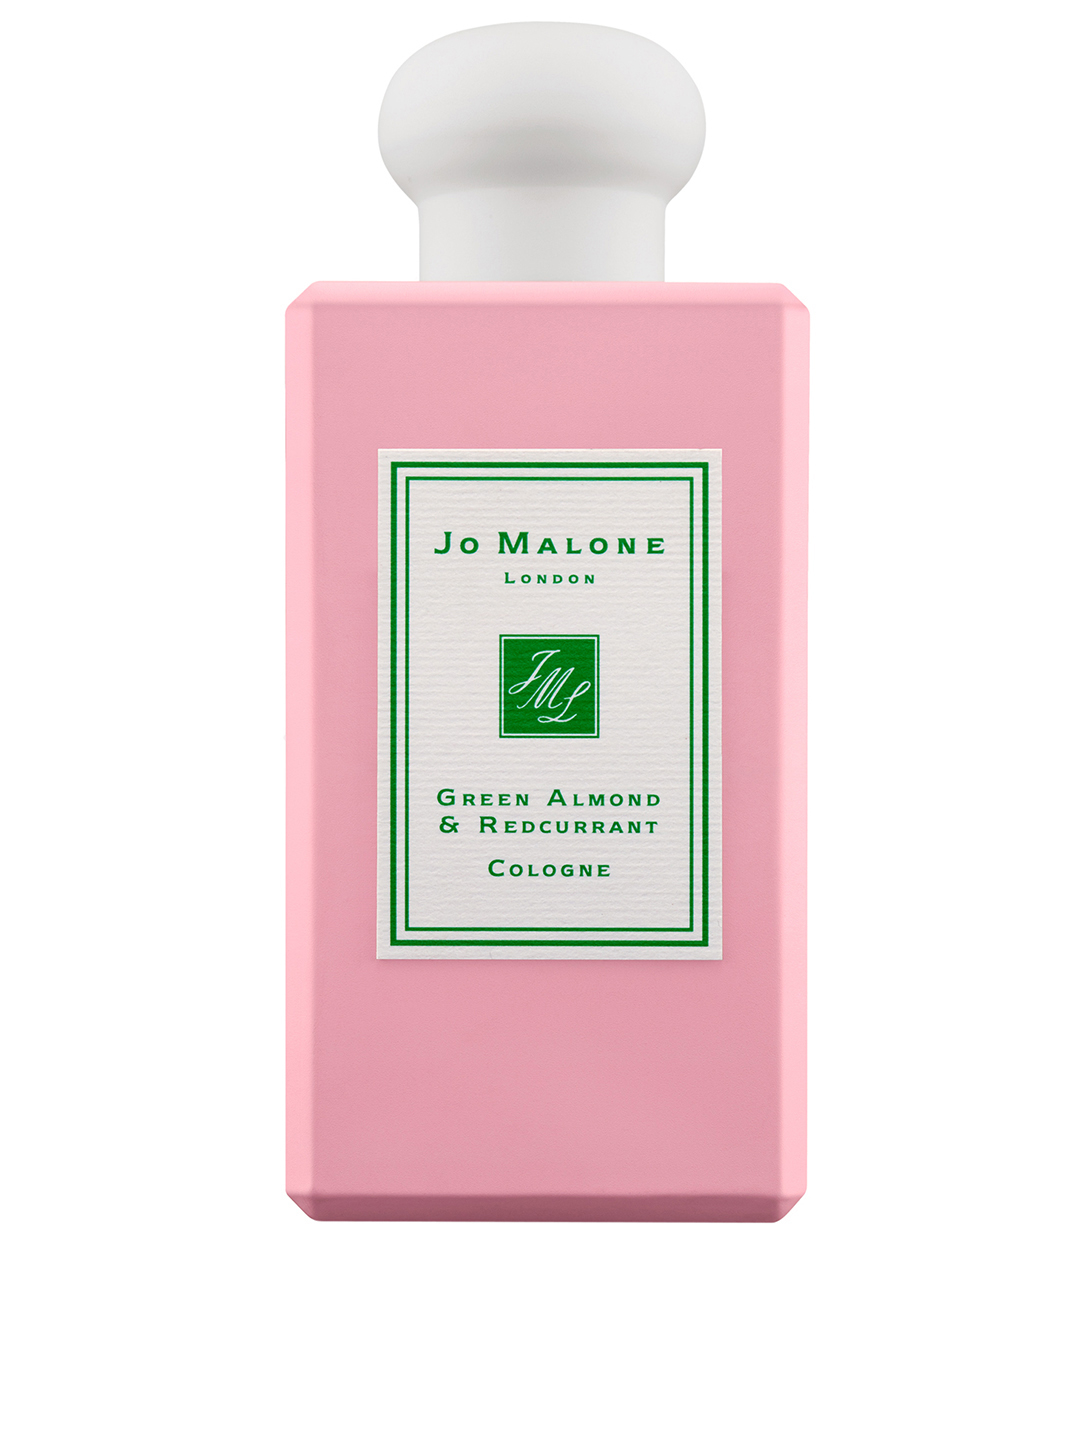 JO MALONE LONDON Green Almond & Redcurrant Cologne Beauty